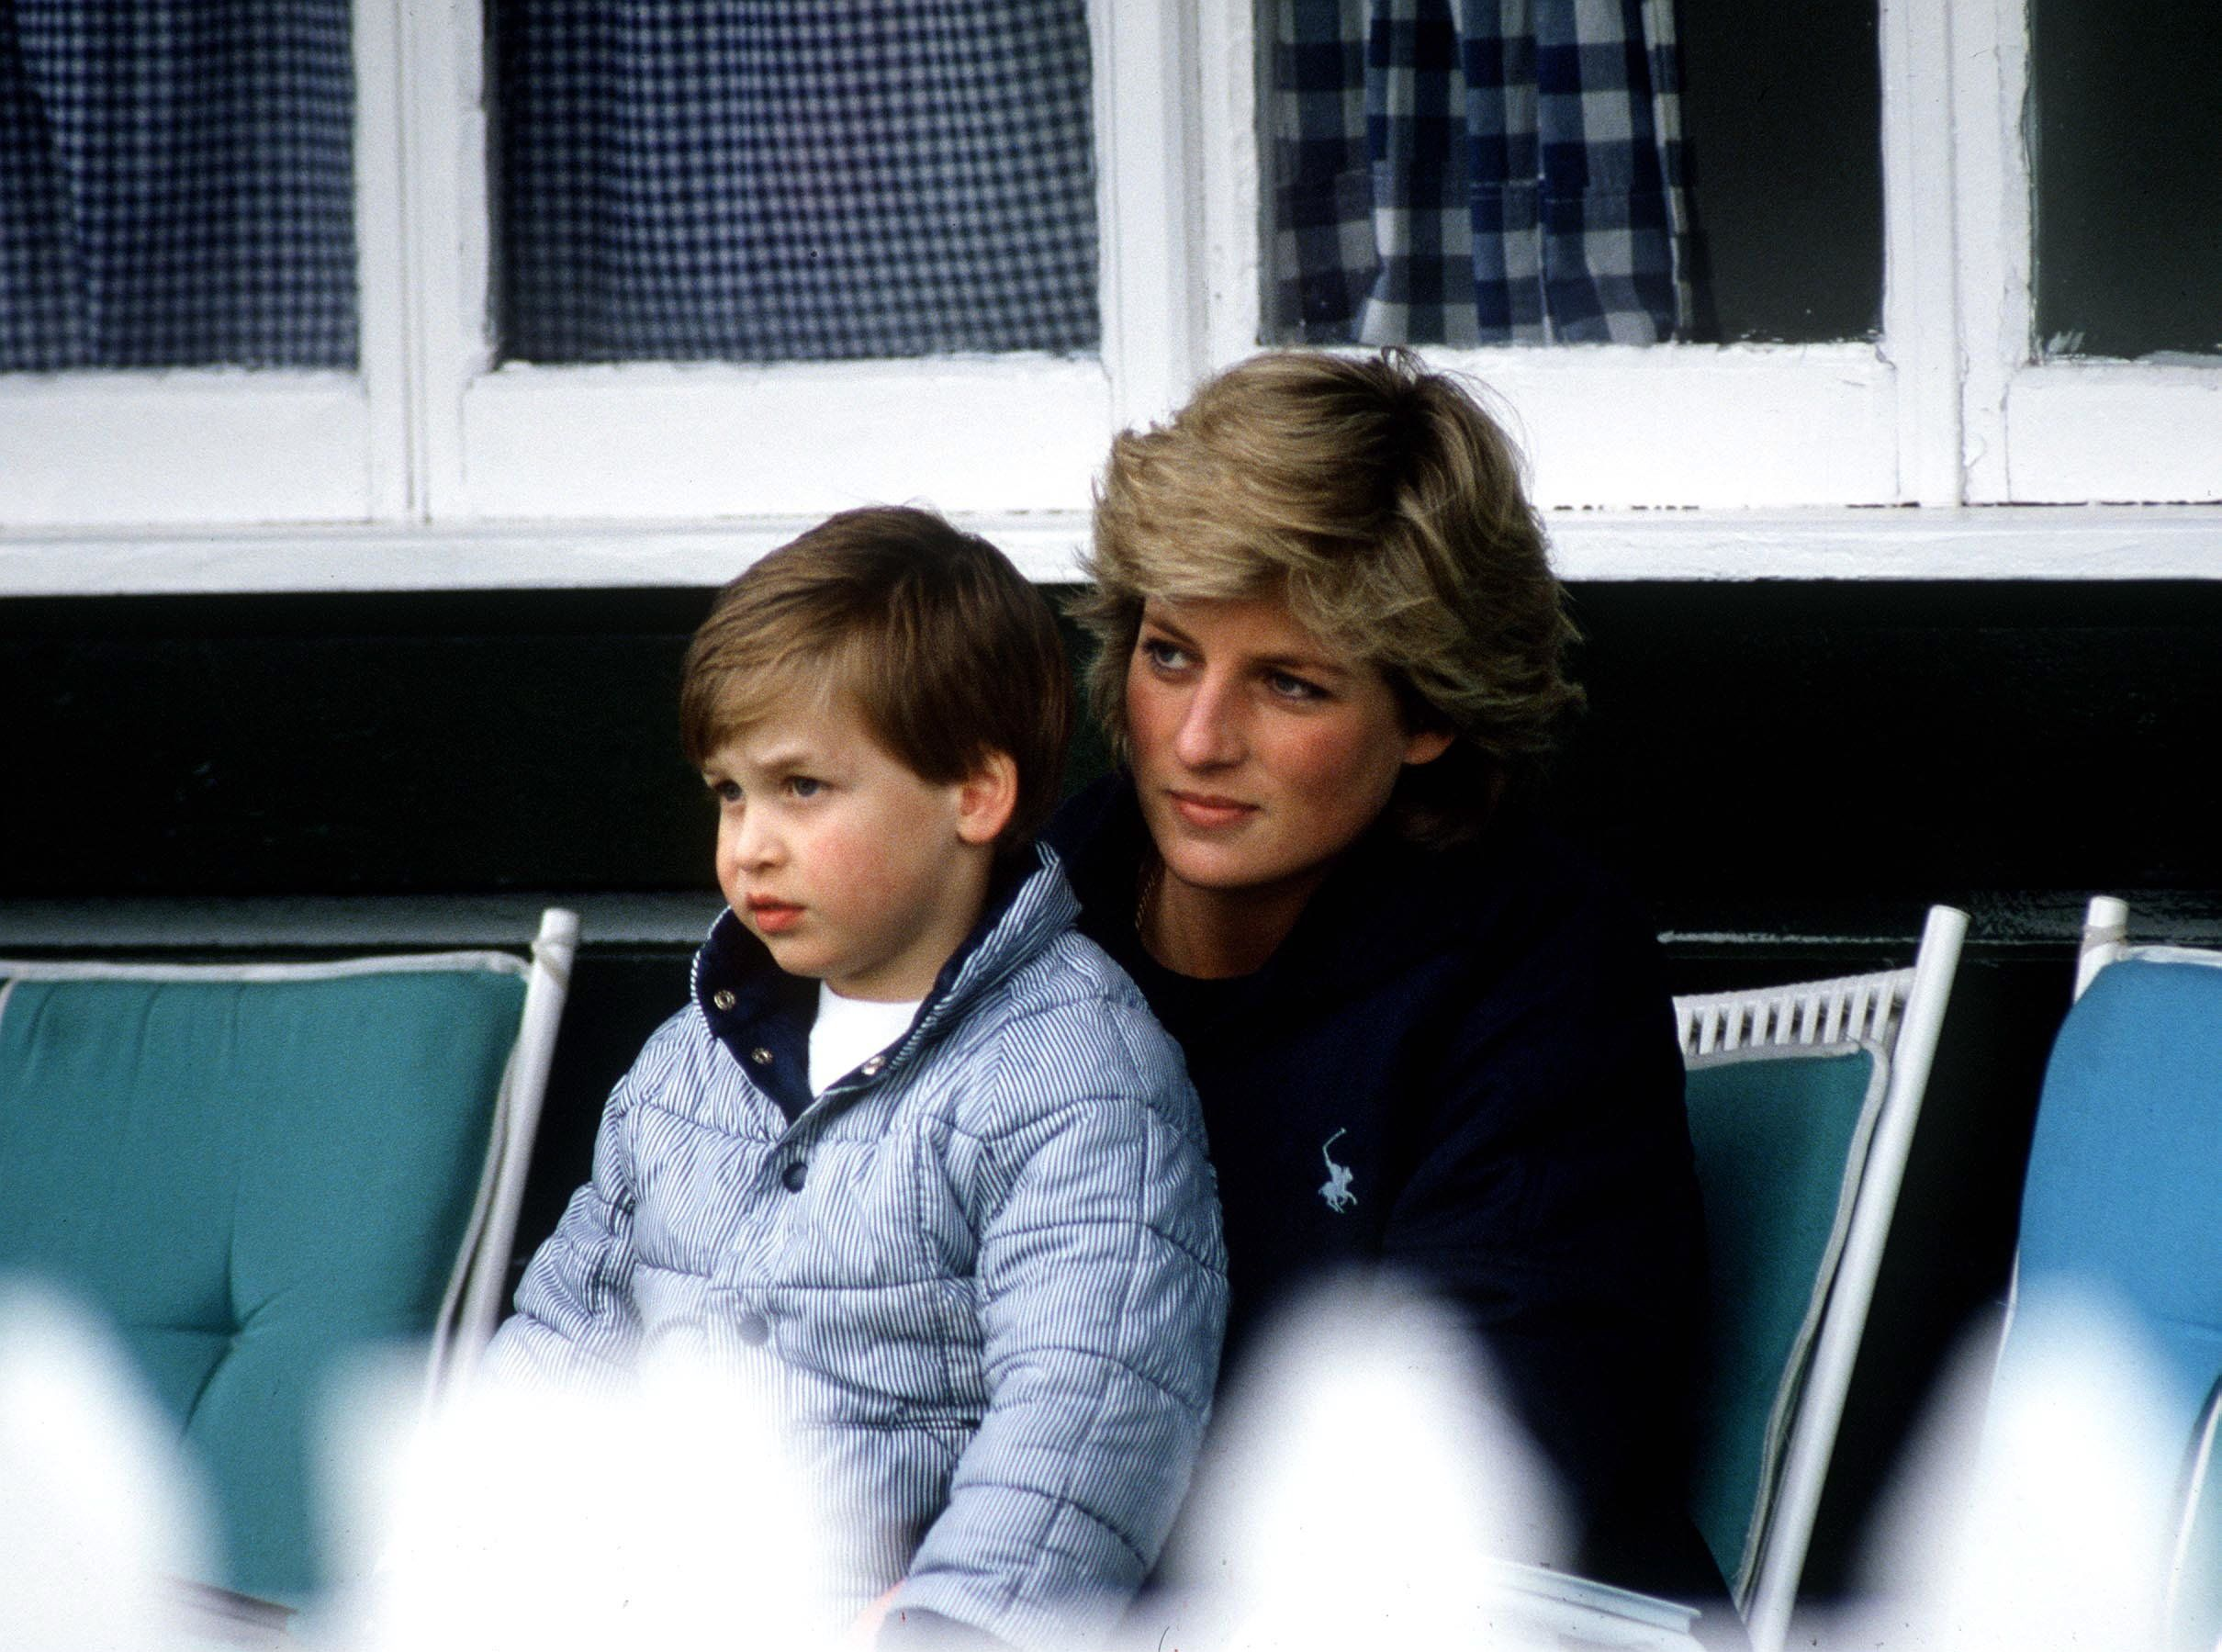 WINDSOR, UNITED KINGDOM - MAY 17:  Princess Diana With Prince William Sitting On Her Lap At Polo.  (Photo by Tim Graham/Getty Images)